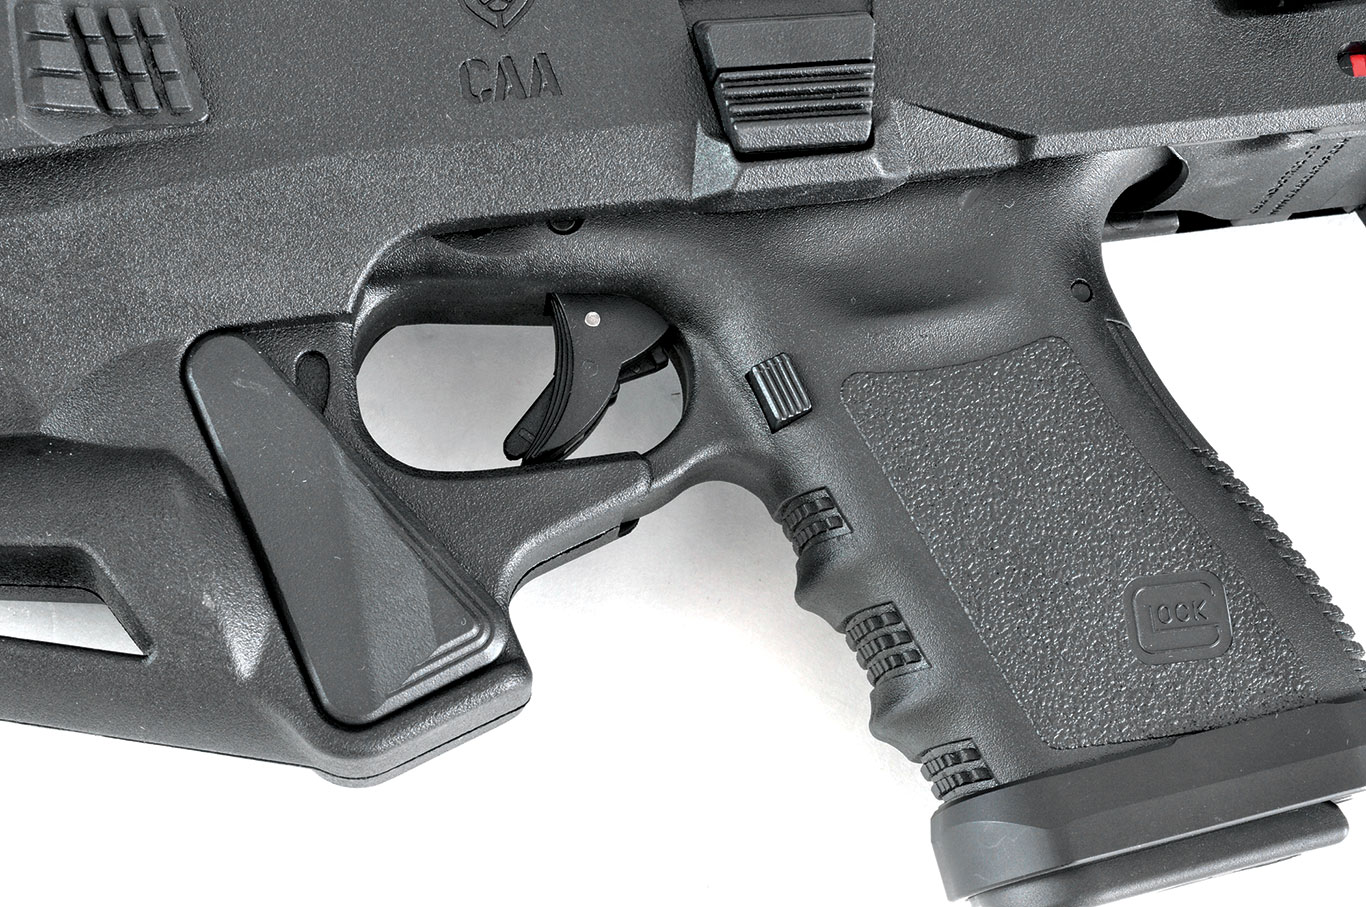 Micro RONI Stabilizer with Glock inserted, showing the manual safety lever down.